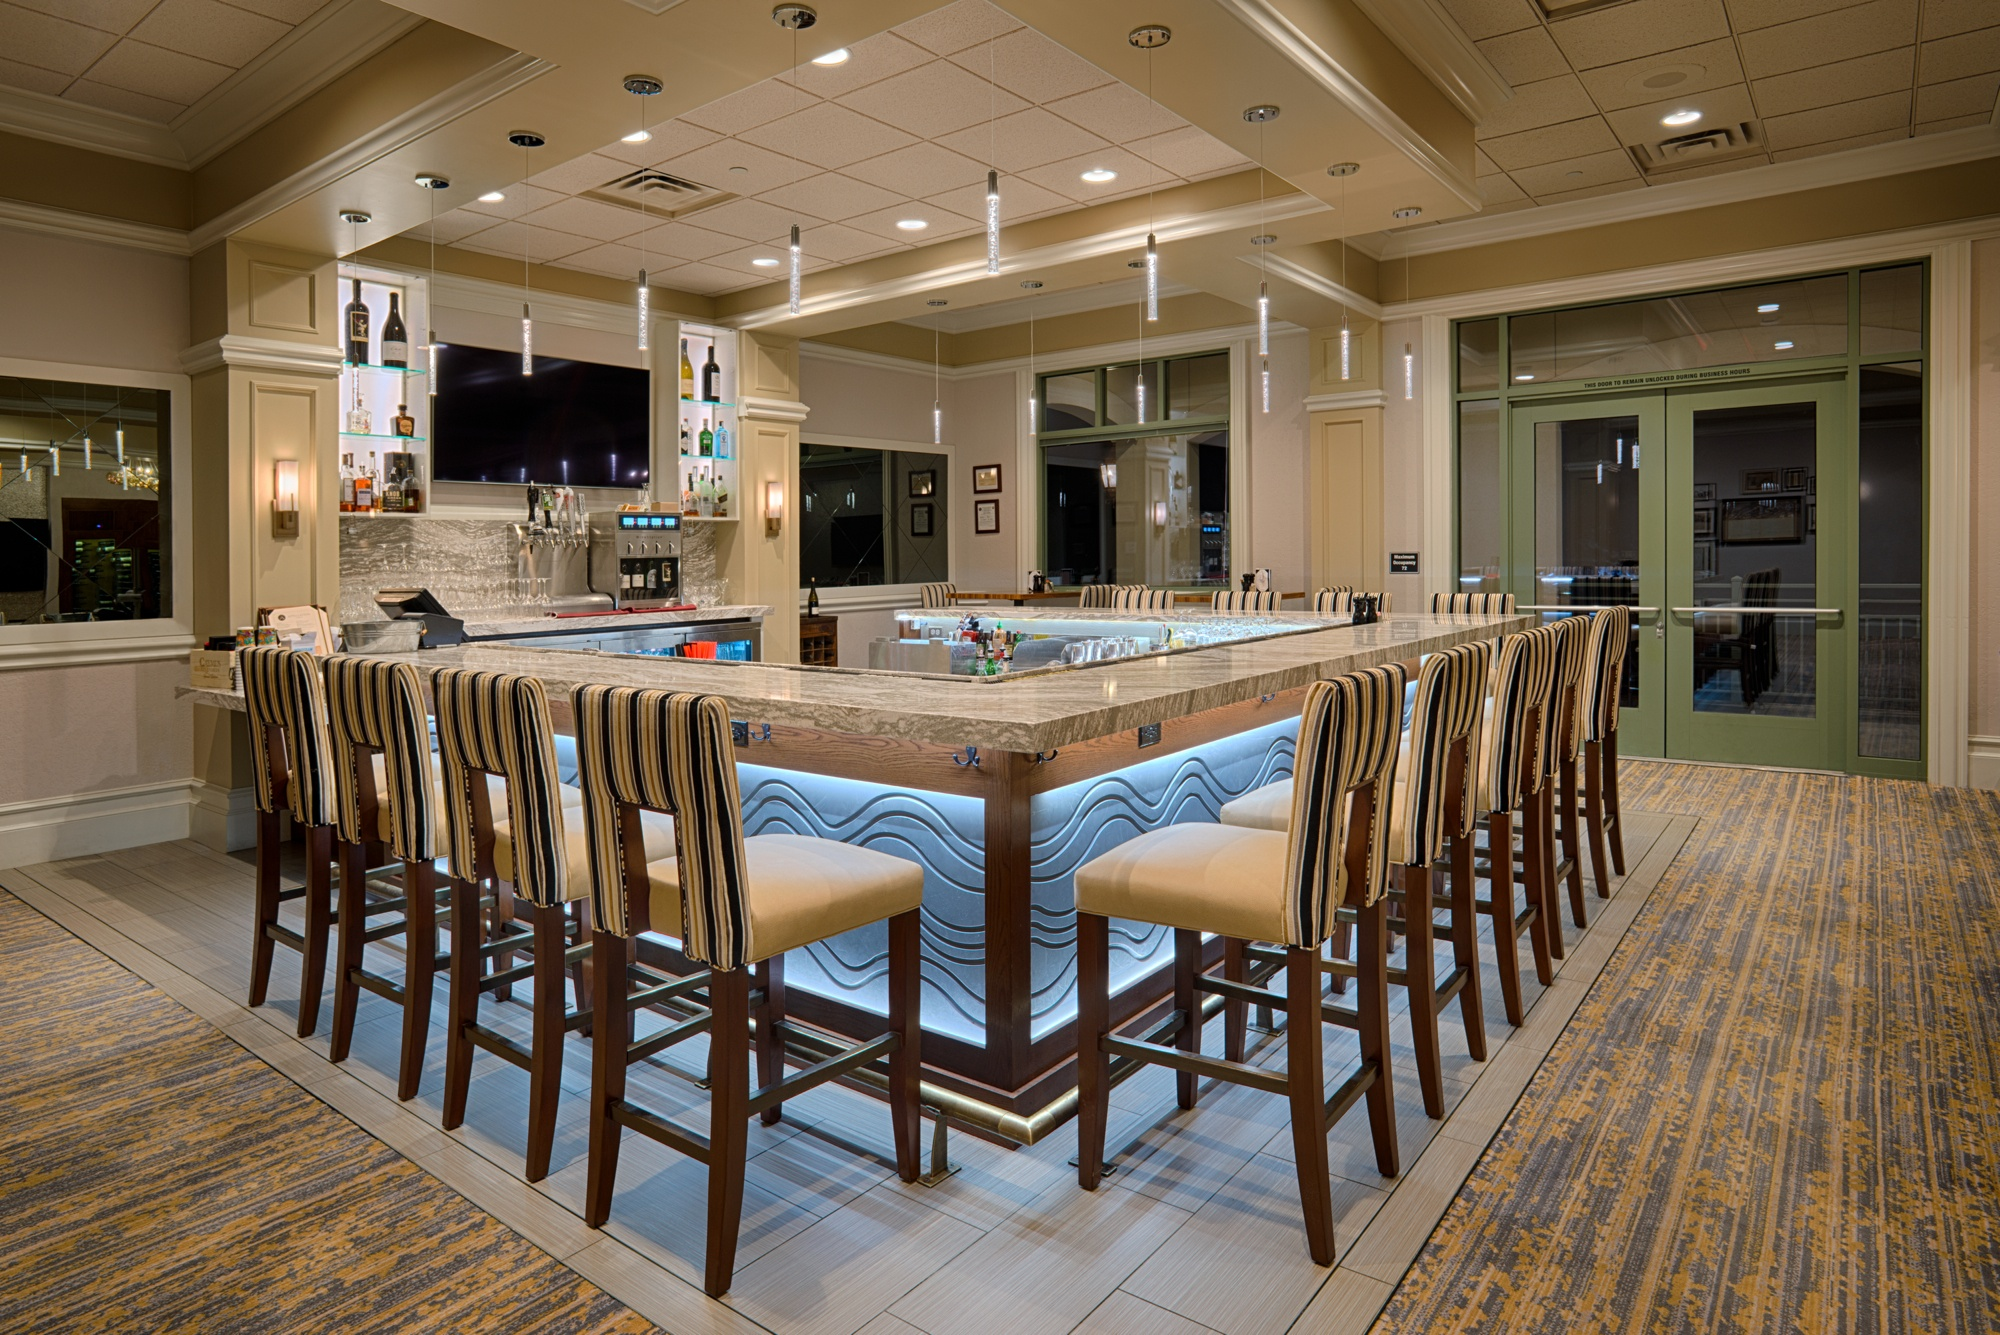 Santa Rosa Golf and Country Club, Food and Beverage Center